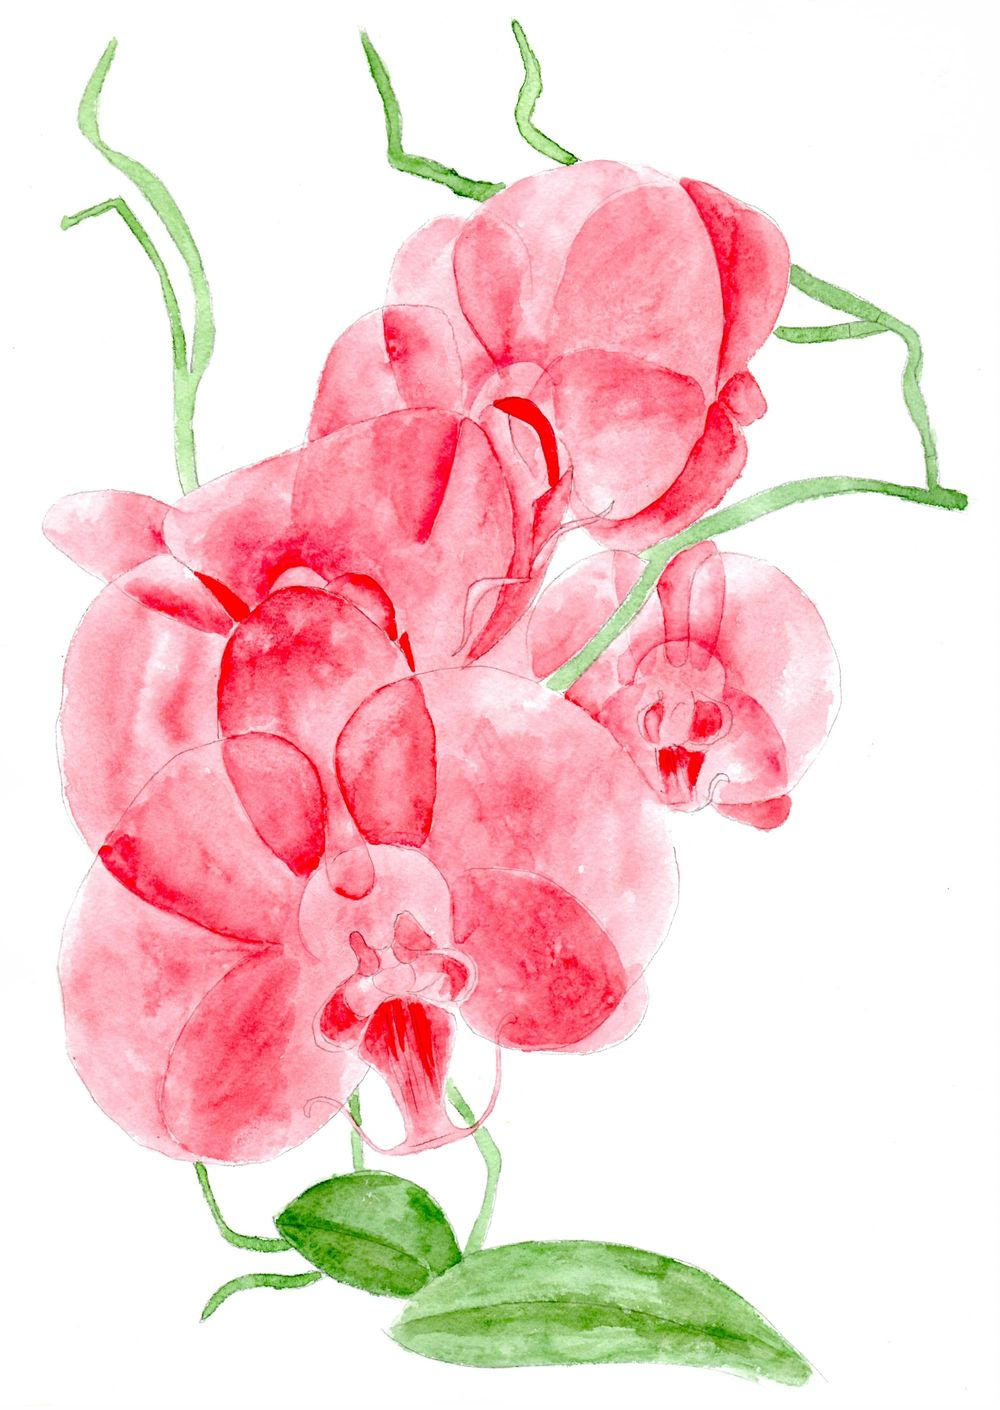 Orchids, watercolor painting - image 5 - student project